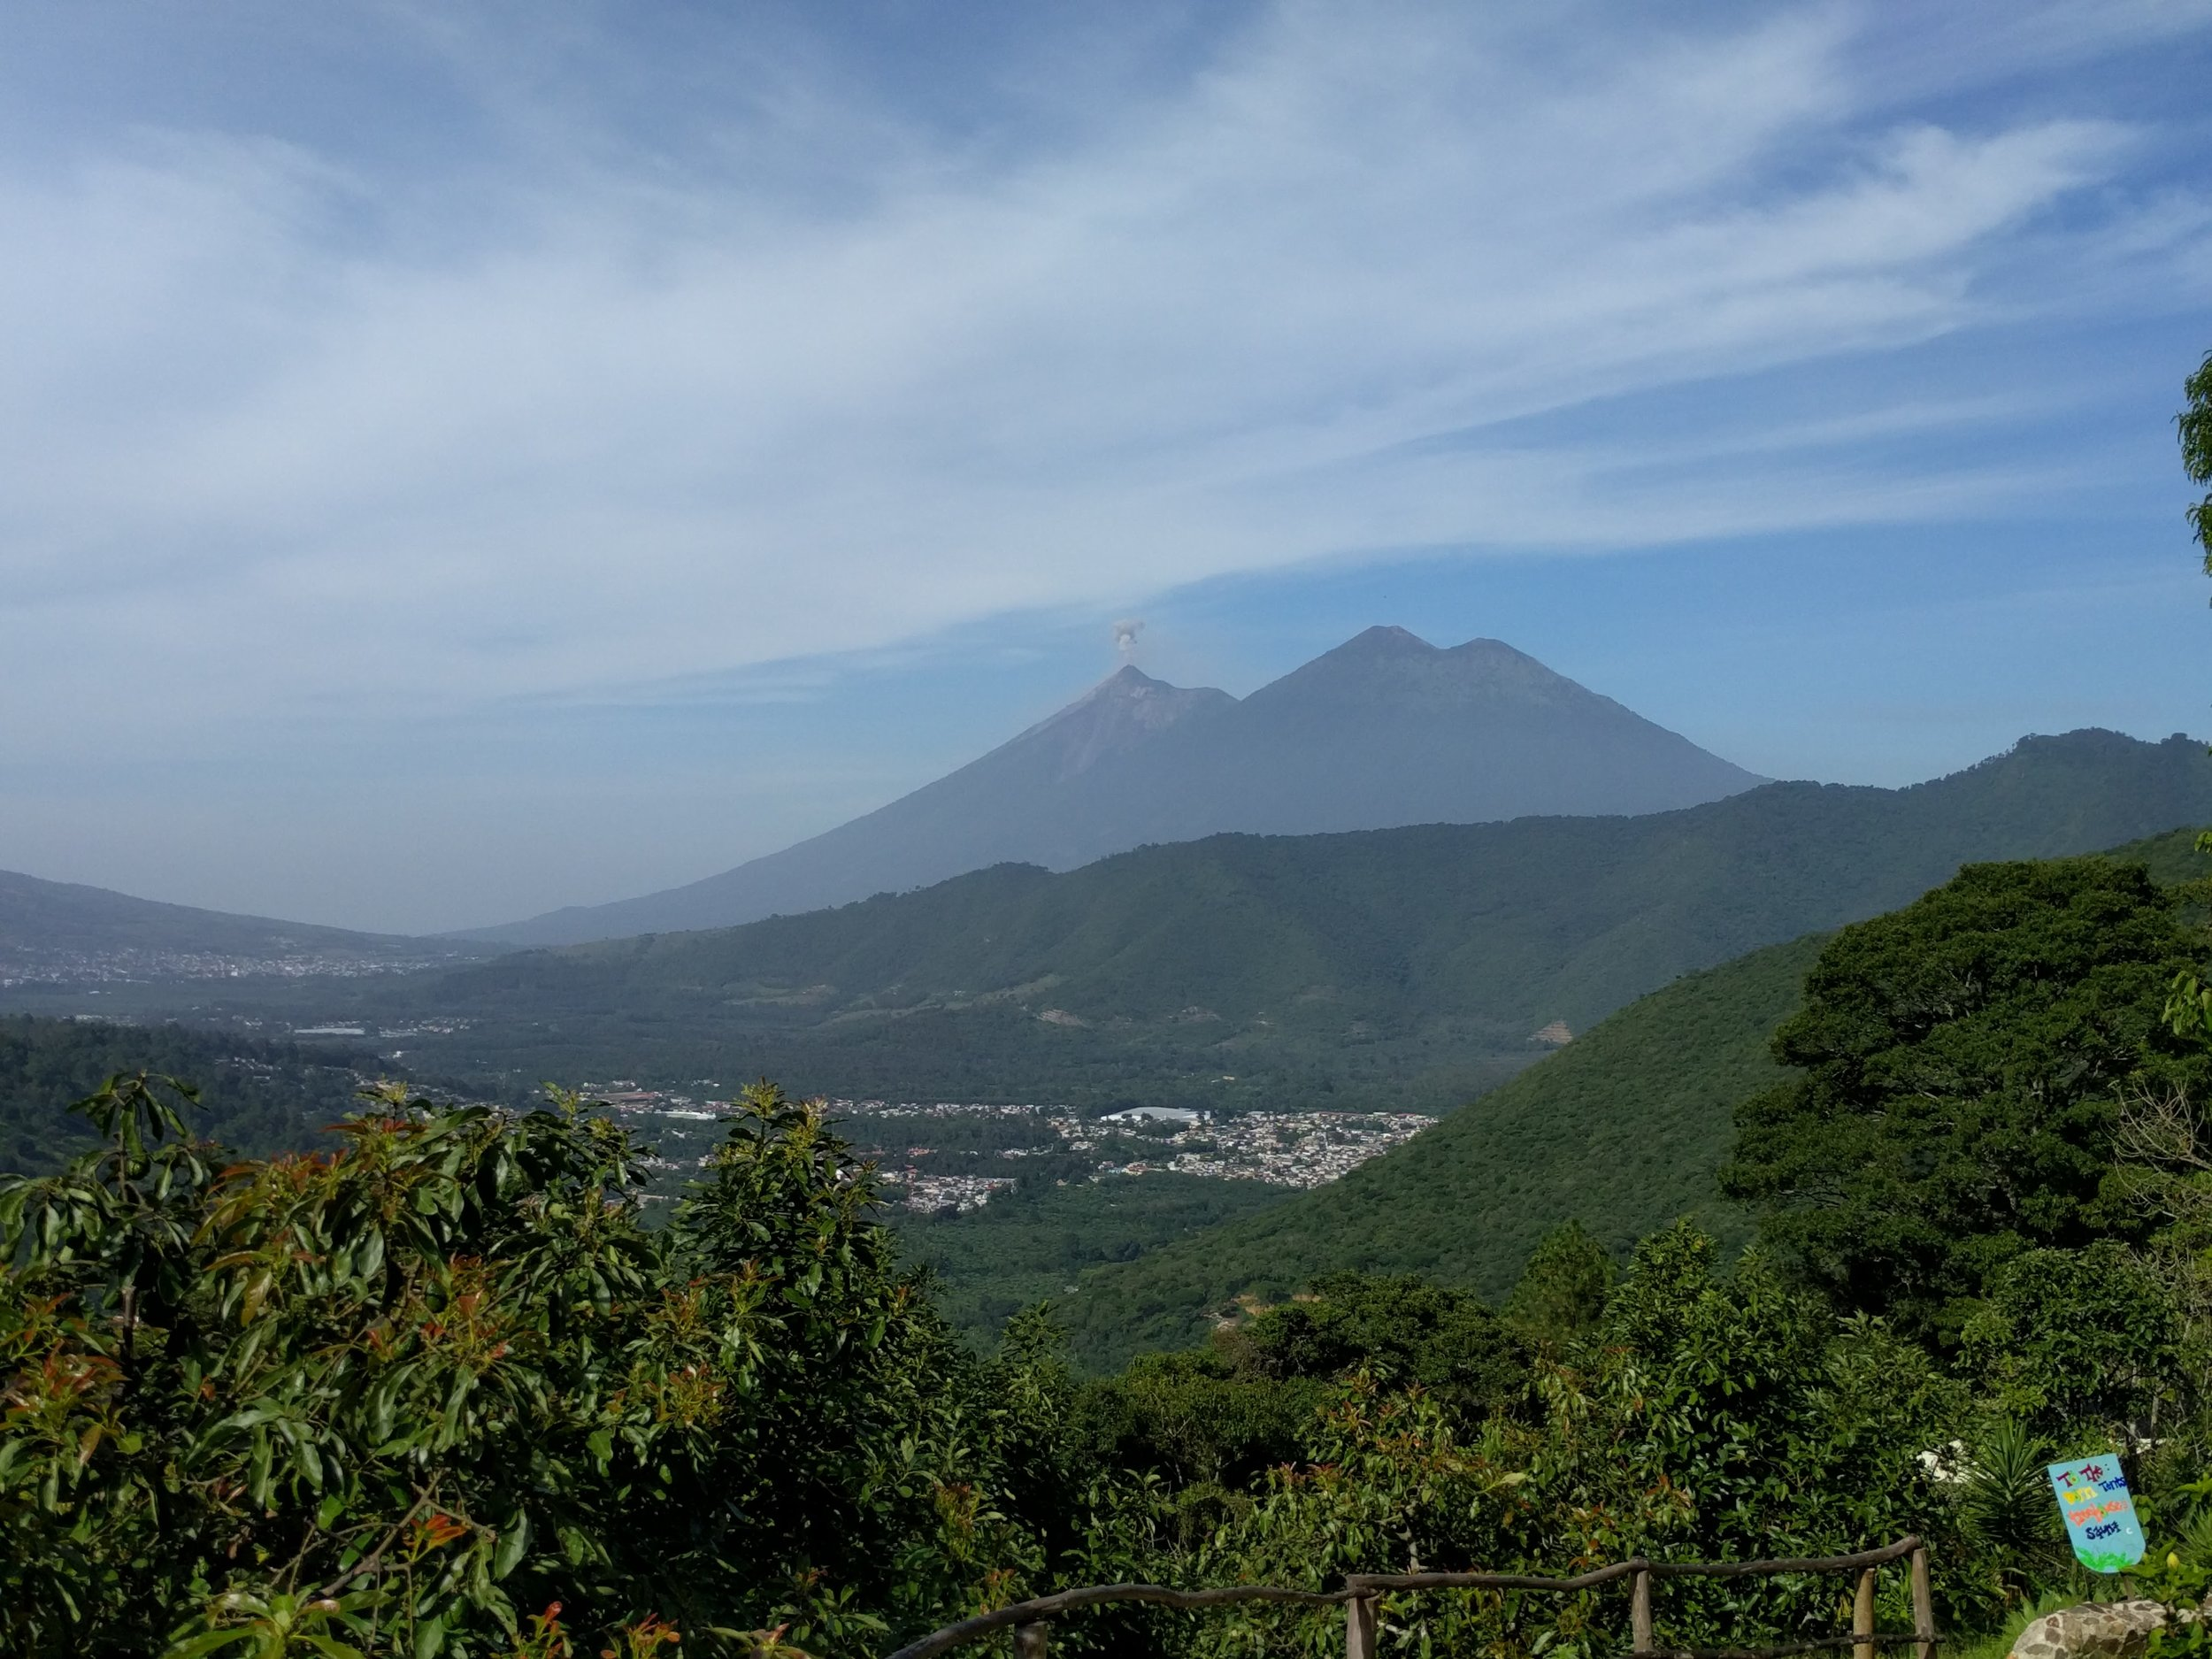 The view of the volcanoes Fuego and Acatenango from Earth Lodge